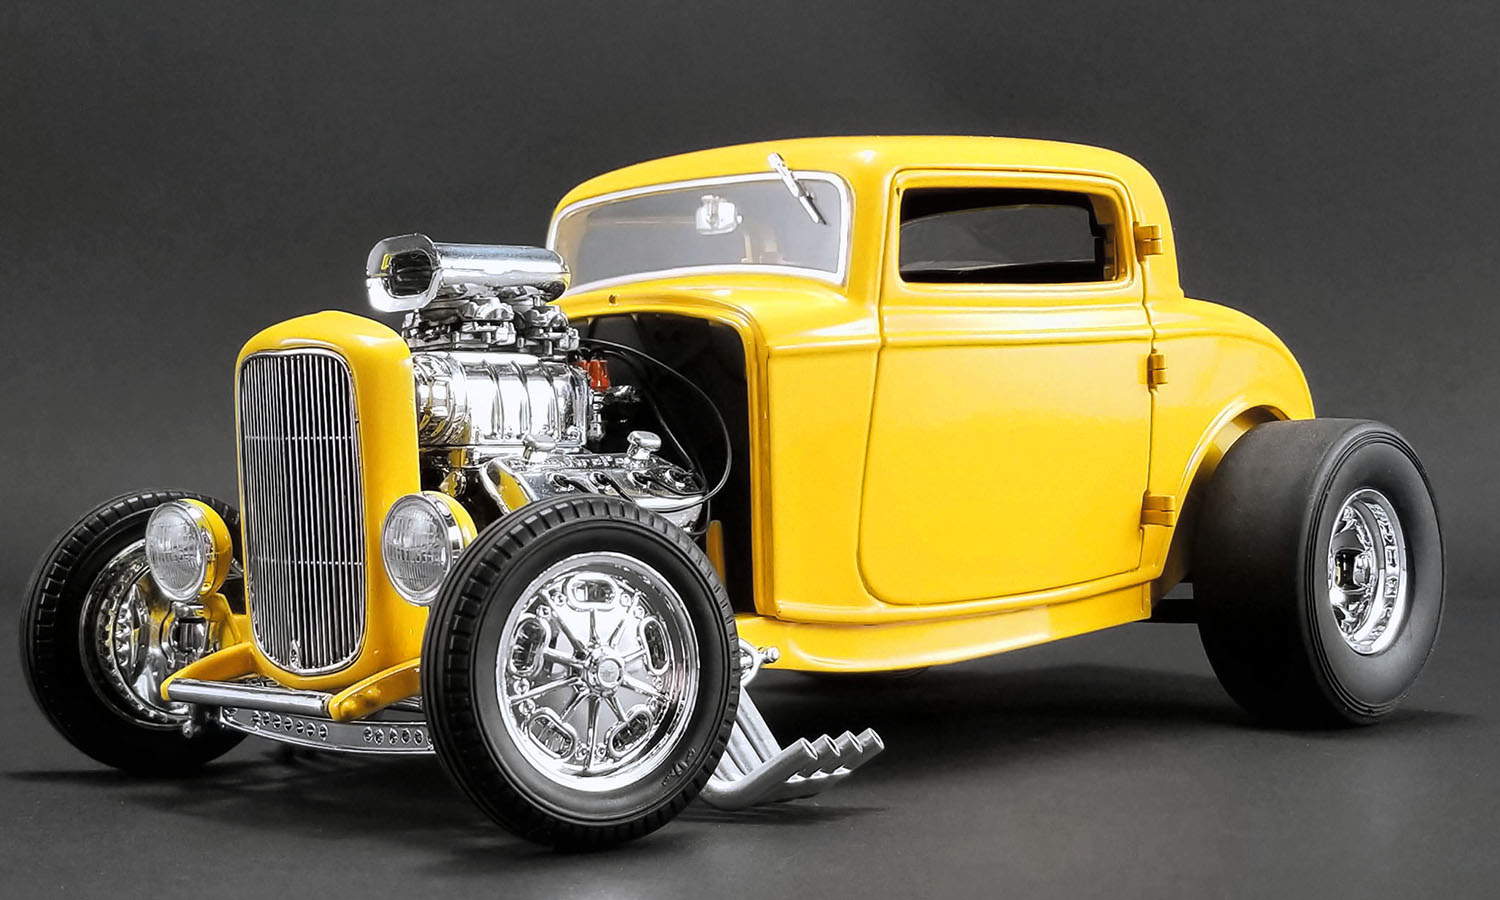 ACME 1:18 1932年モデル フォード 3 Window Deuces Wild1932 FORD 3 WINDOW - DEUCES WILD 1/18 by ACME USA